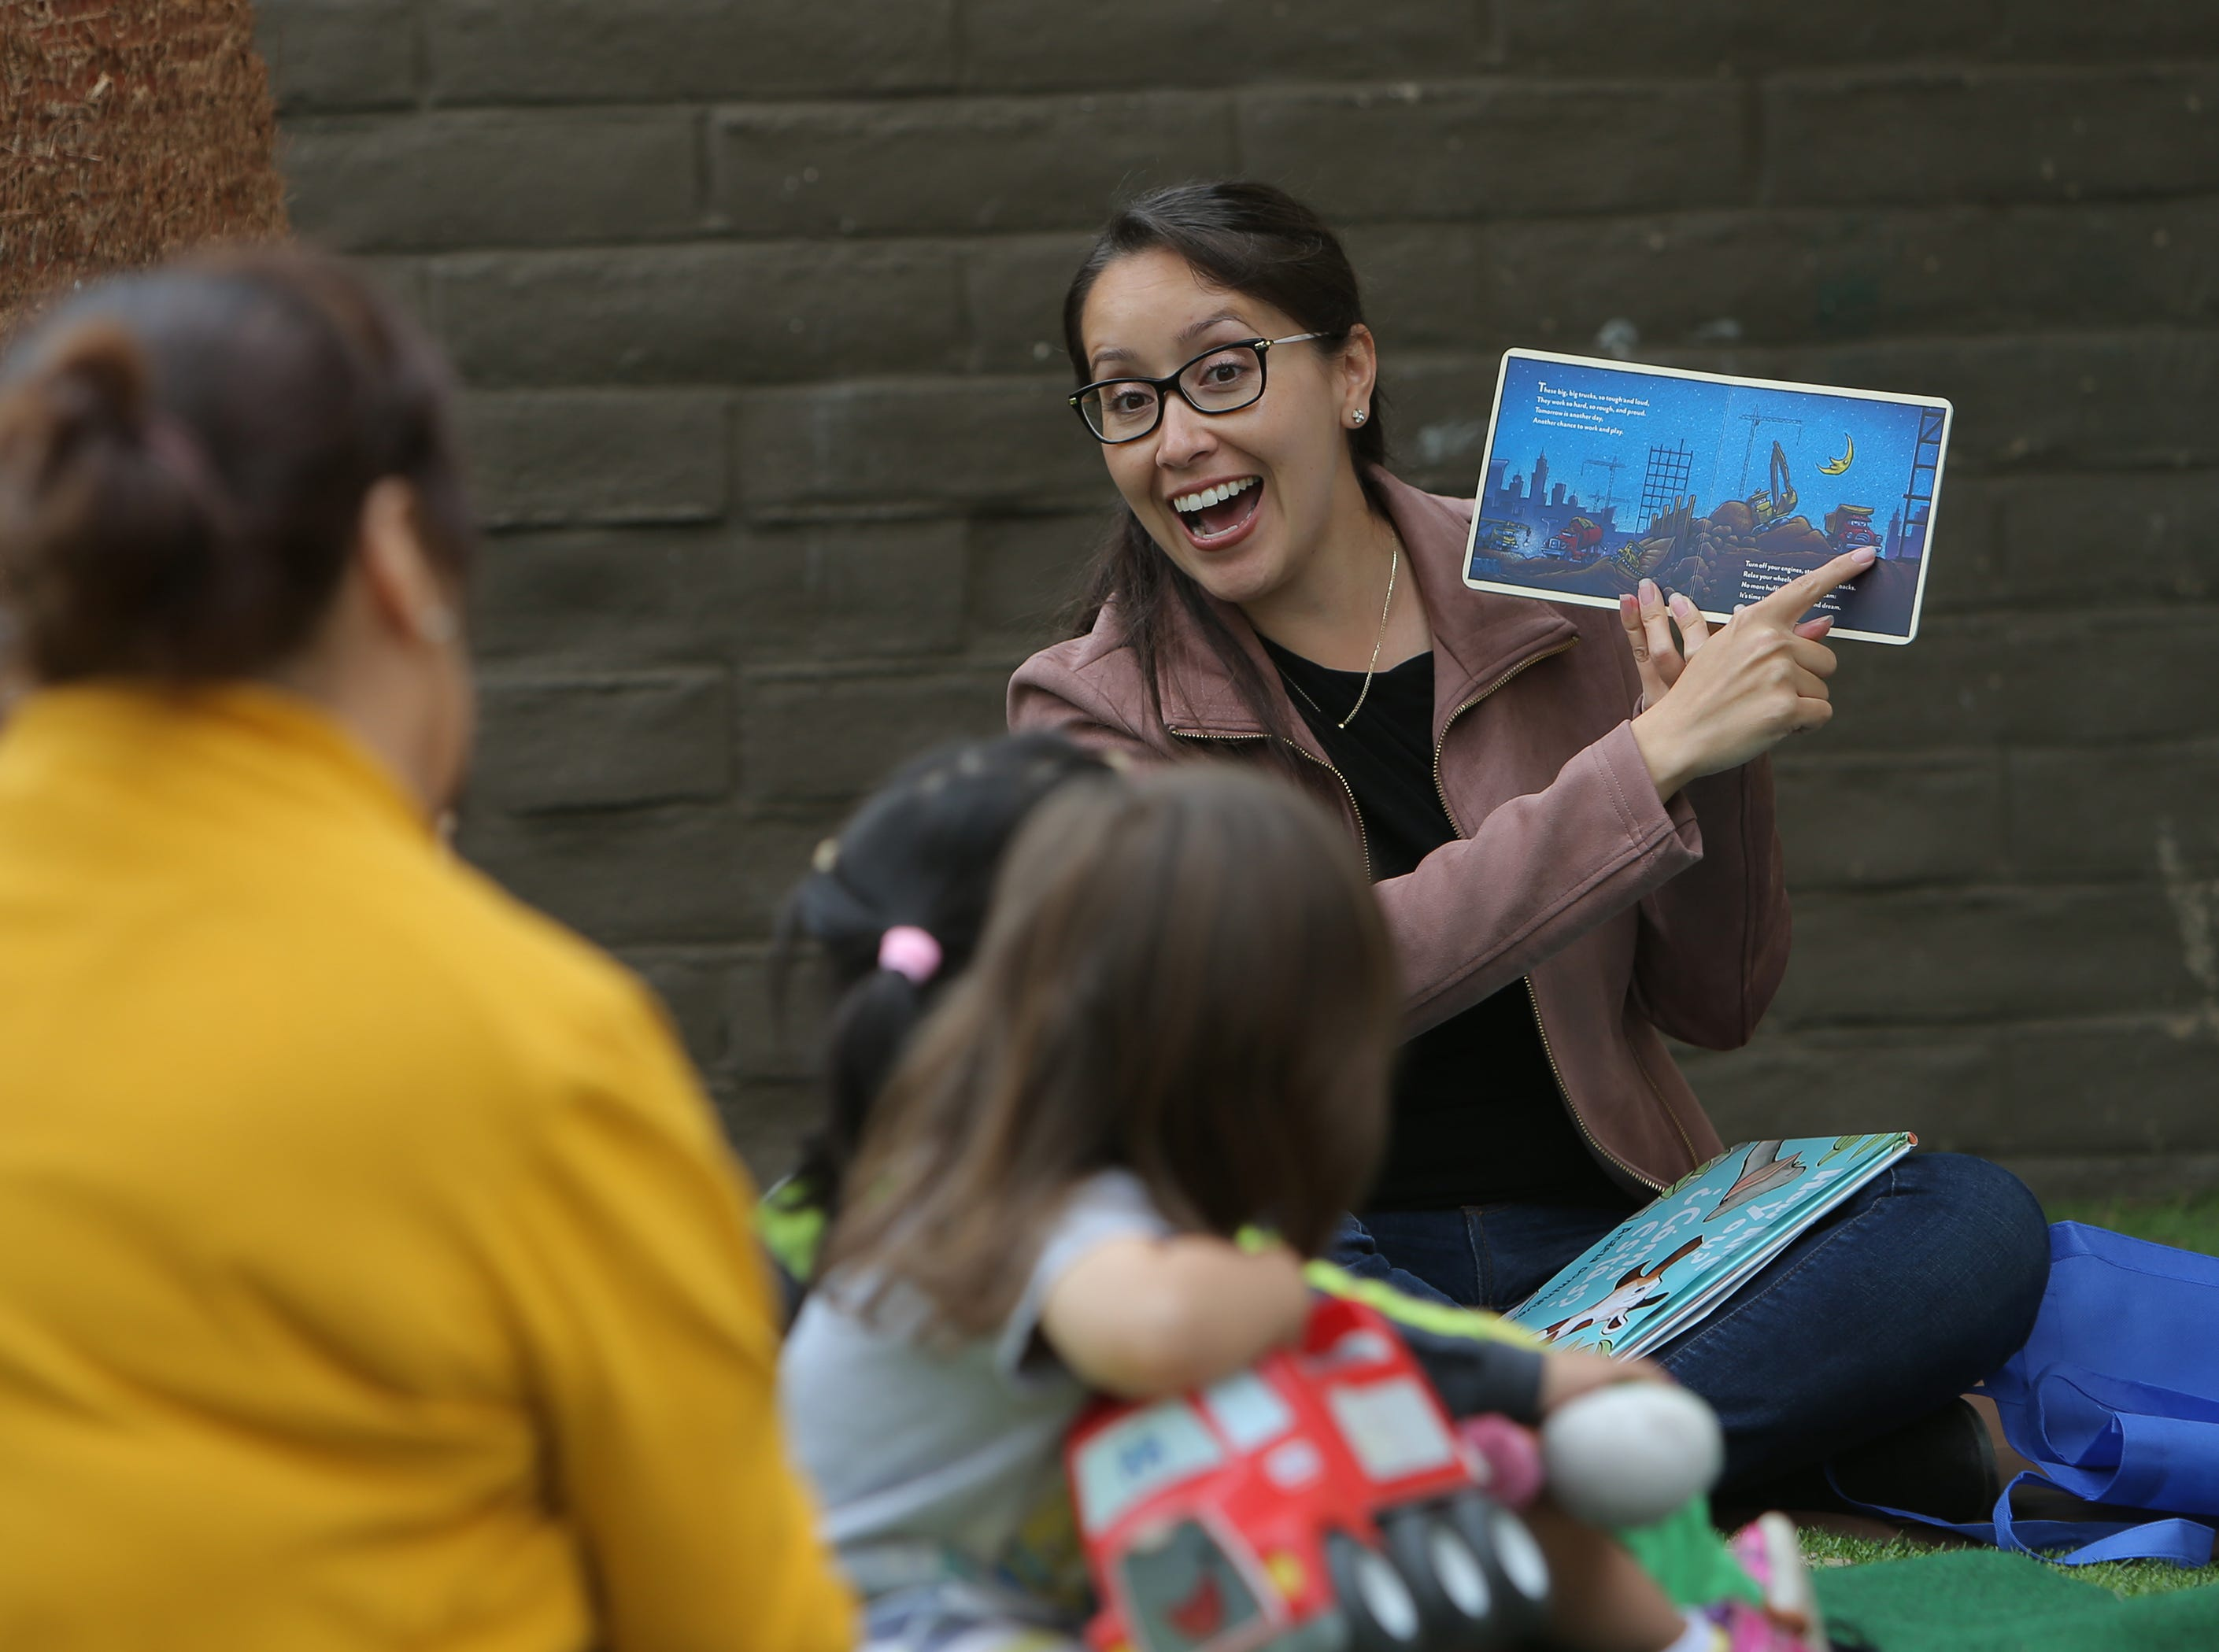 Oxnard City Council member Vianey Lopez reads to preschoolers during the Take 5 and Read to Kids campaign Friday at La Escuelita Child Development Center in Oxnard. The class that she read to was made up of 2-year-olds.